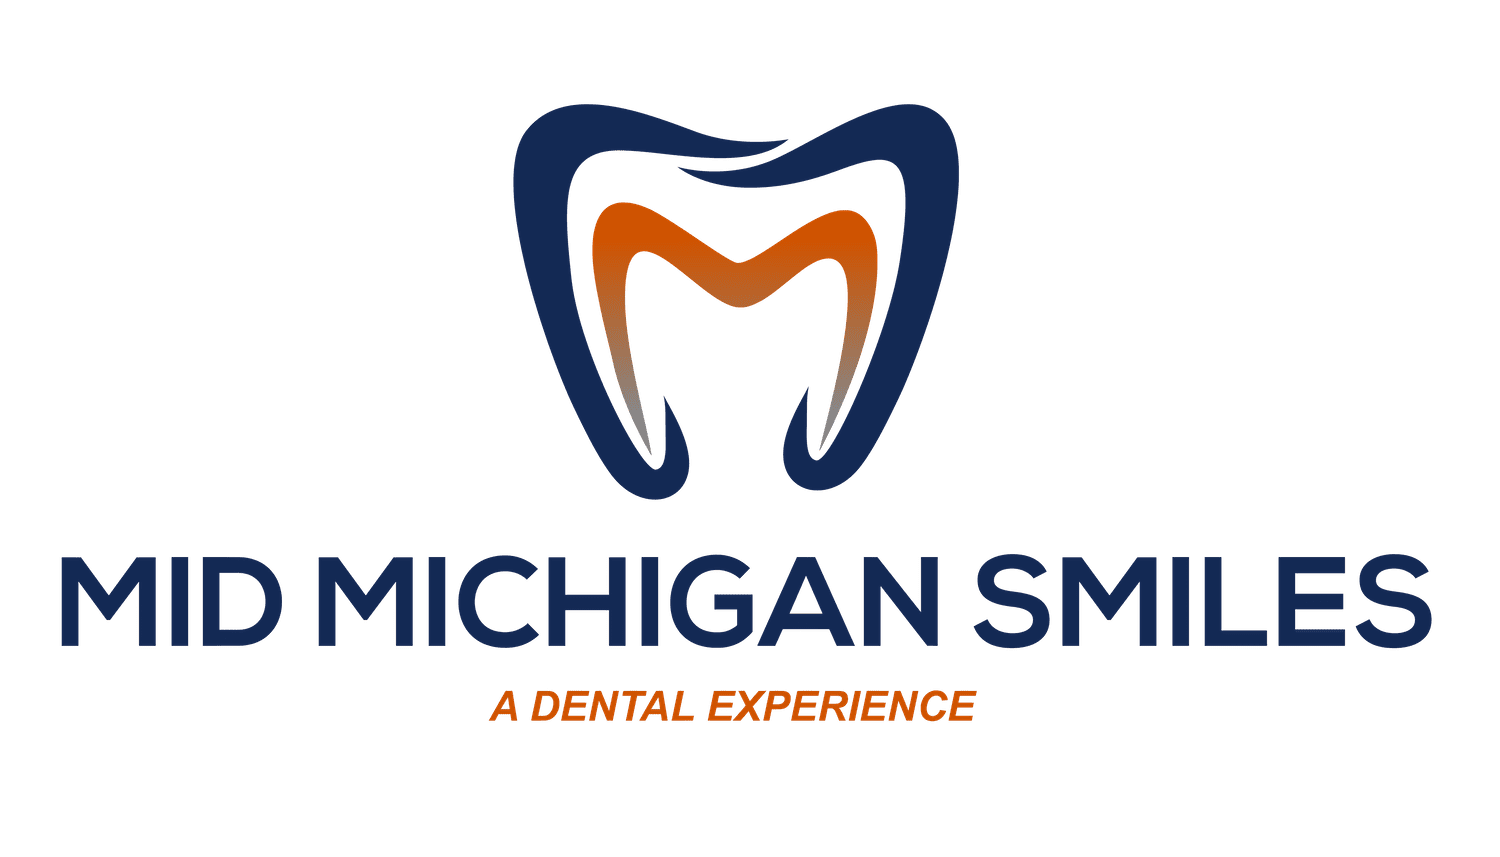 Dentist in Mt. Pleasant MI, Mid Michigan Smiles